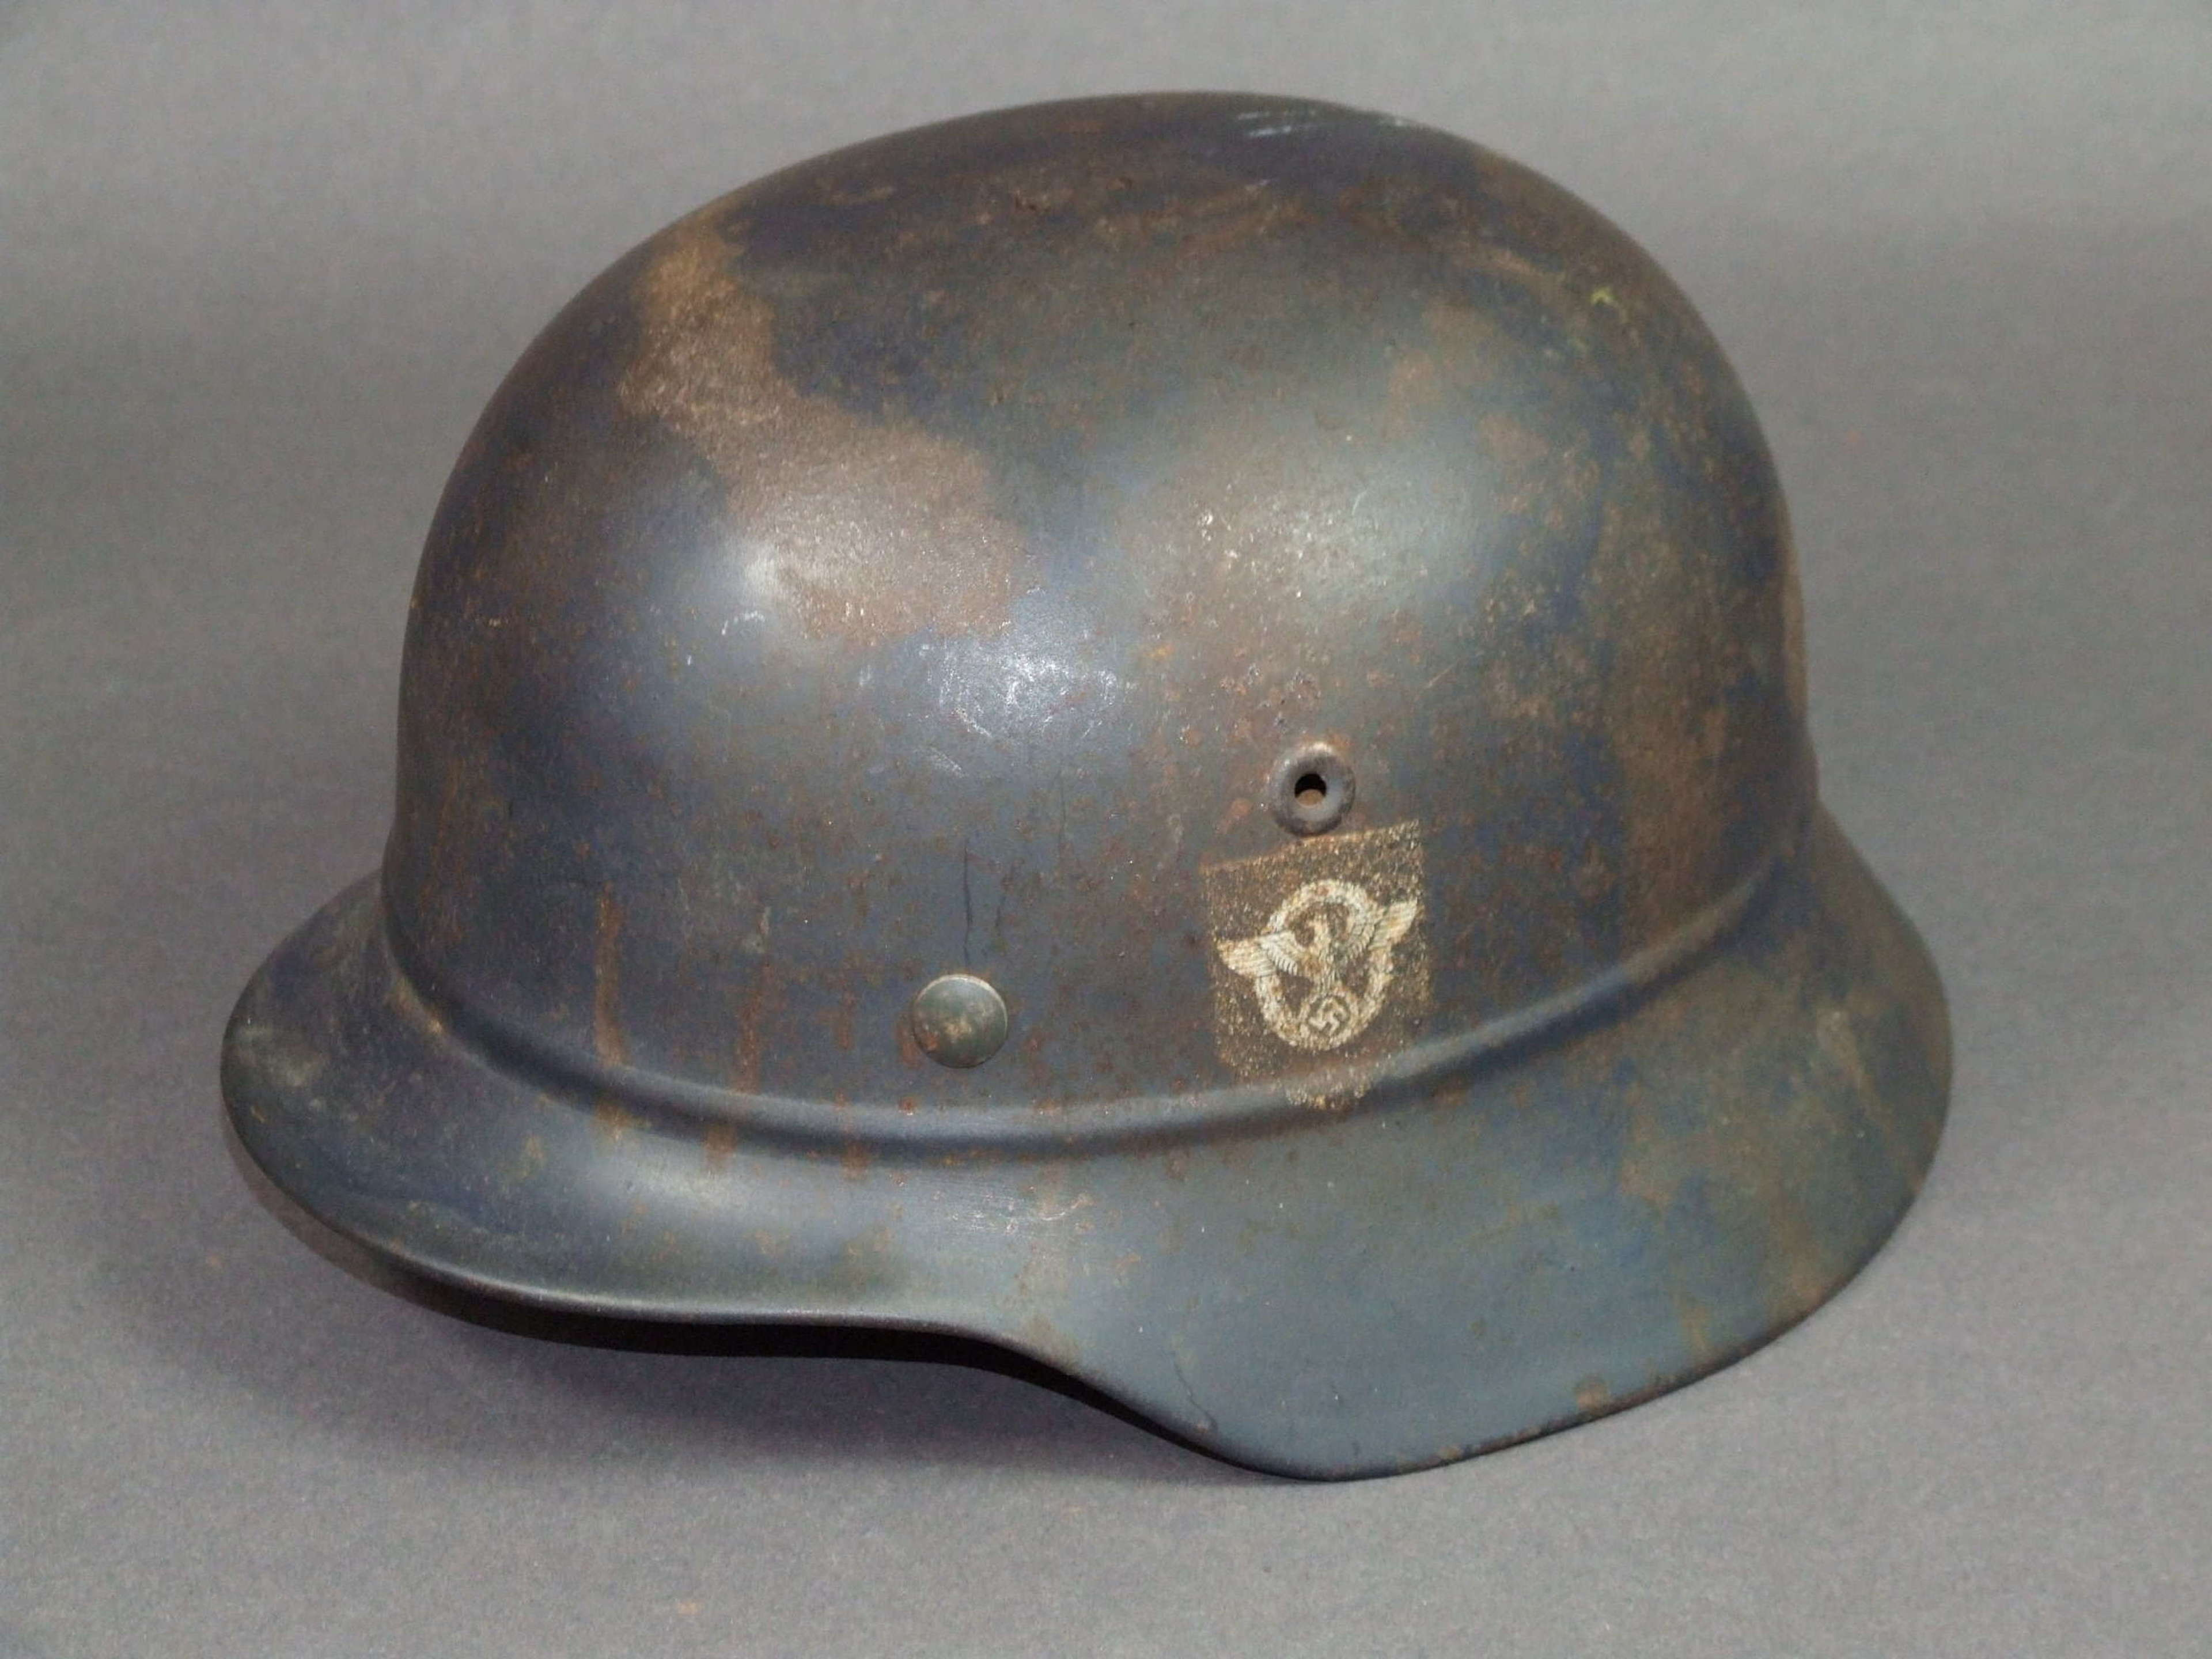 M35 Fire Protection Police Helmet